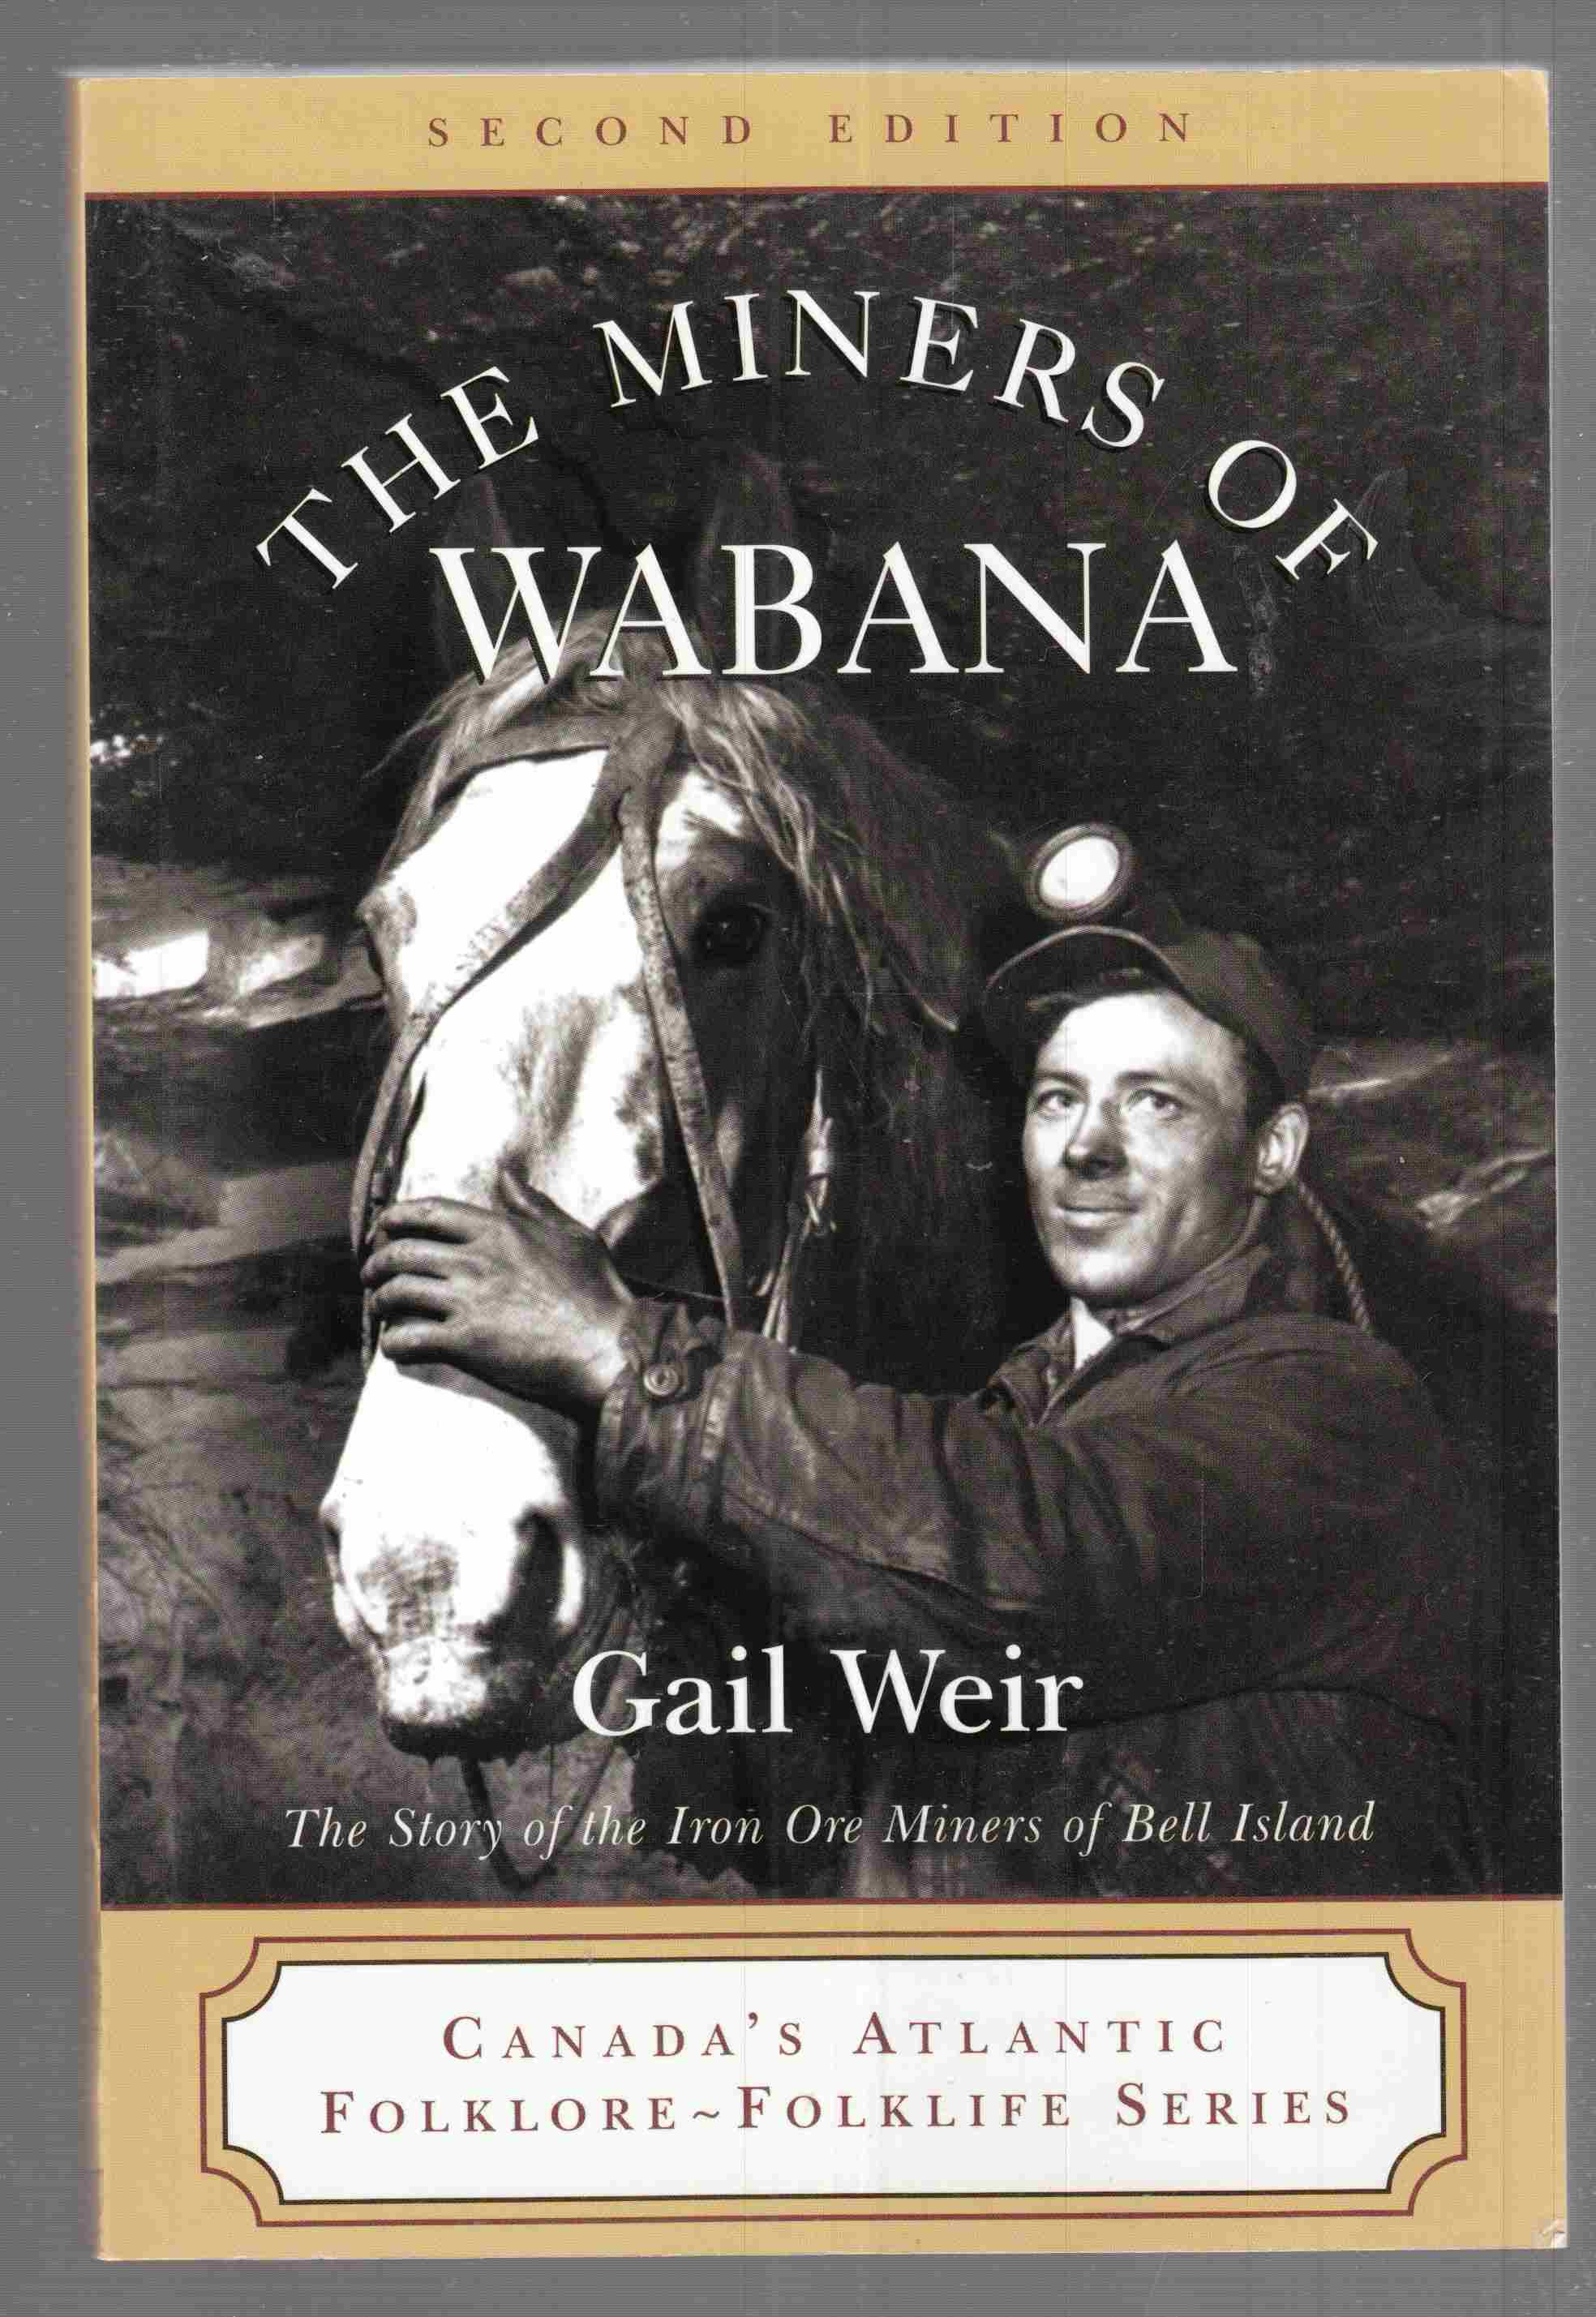 Image for The Miners of Wabana  The Story of the Iron Ore Miners of Bell Island